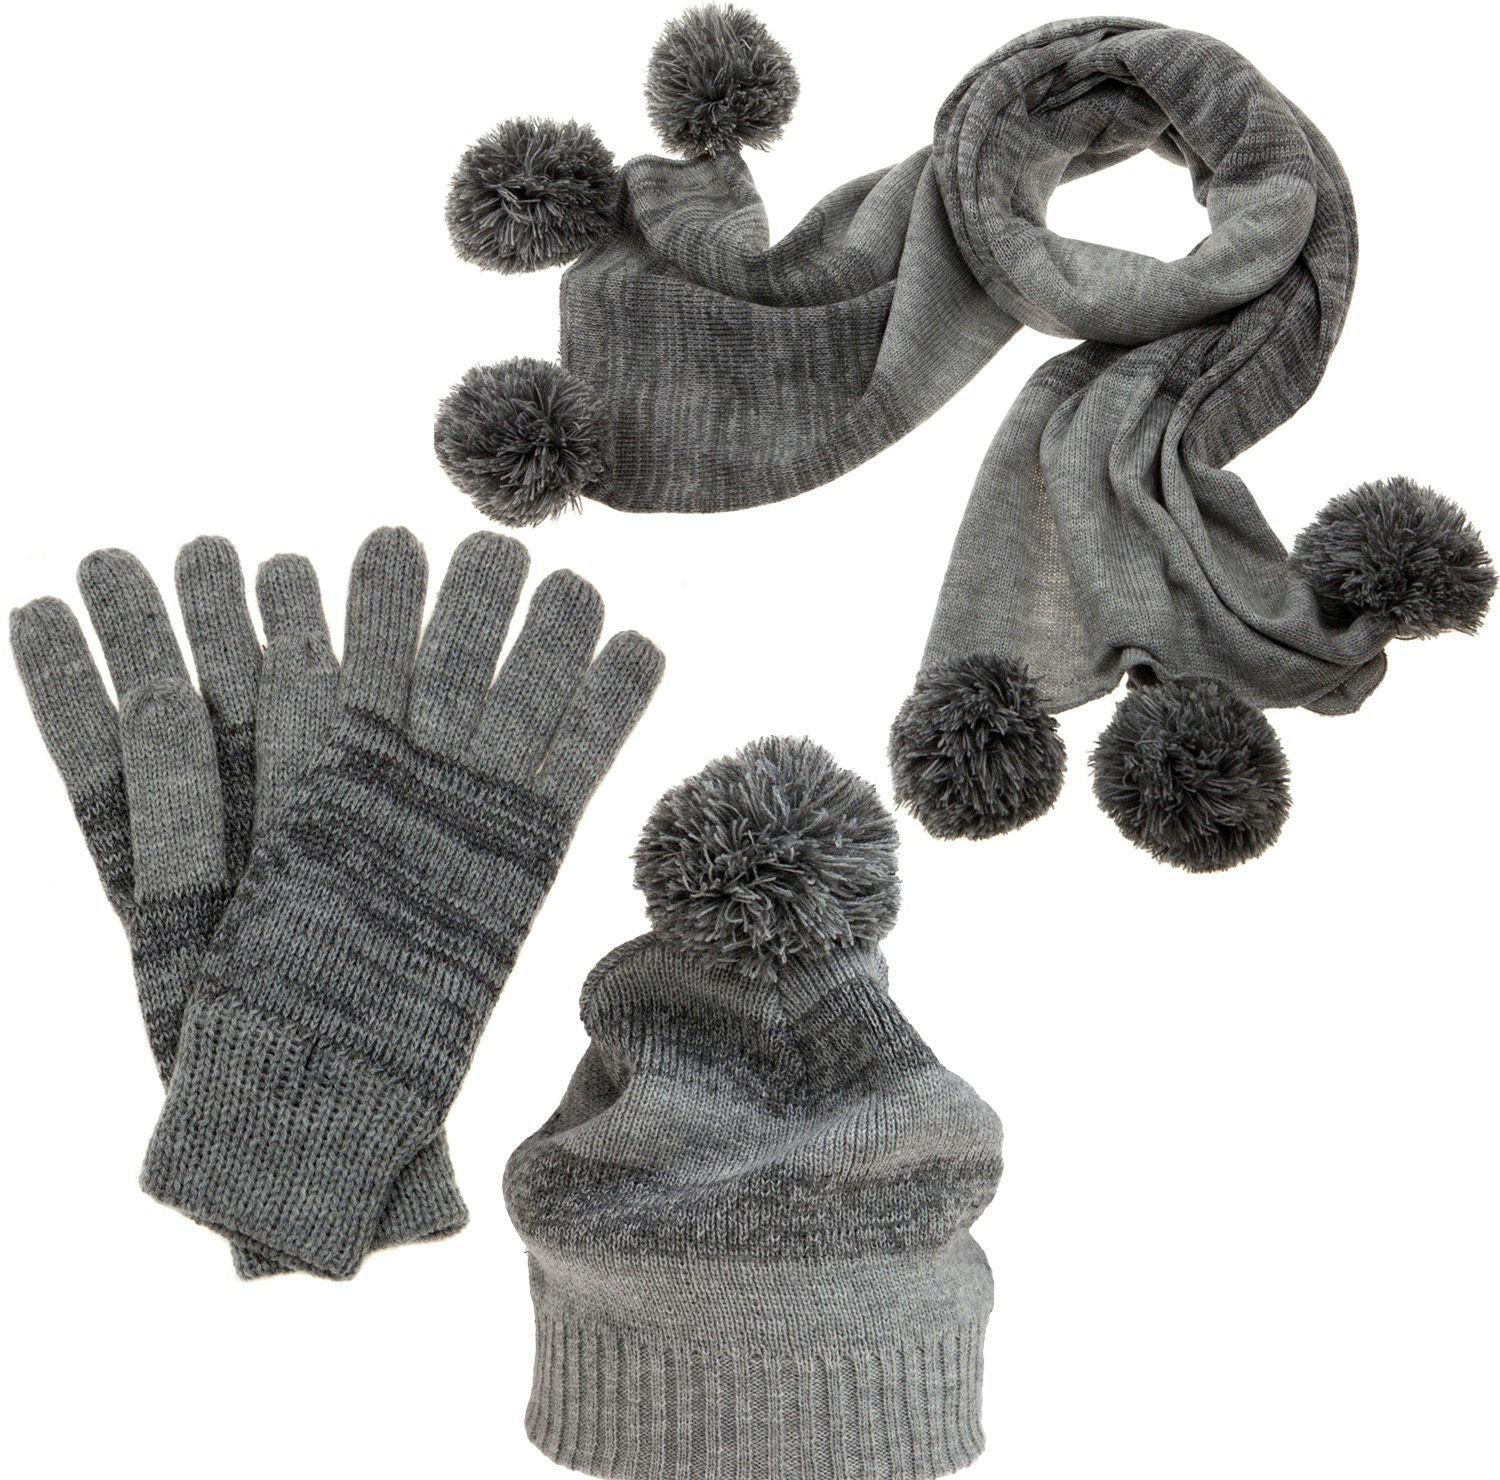 Gloves clipart hat wooly. Hats and scarves